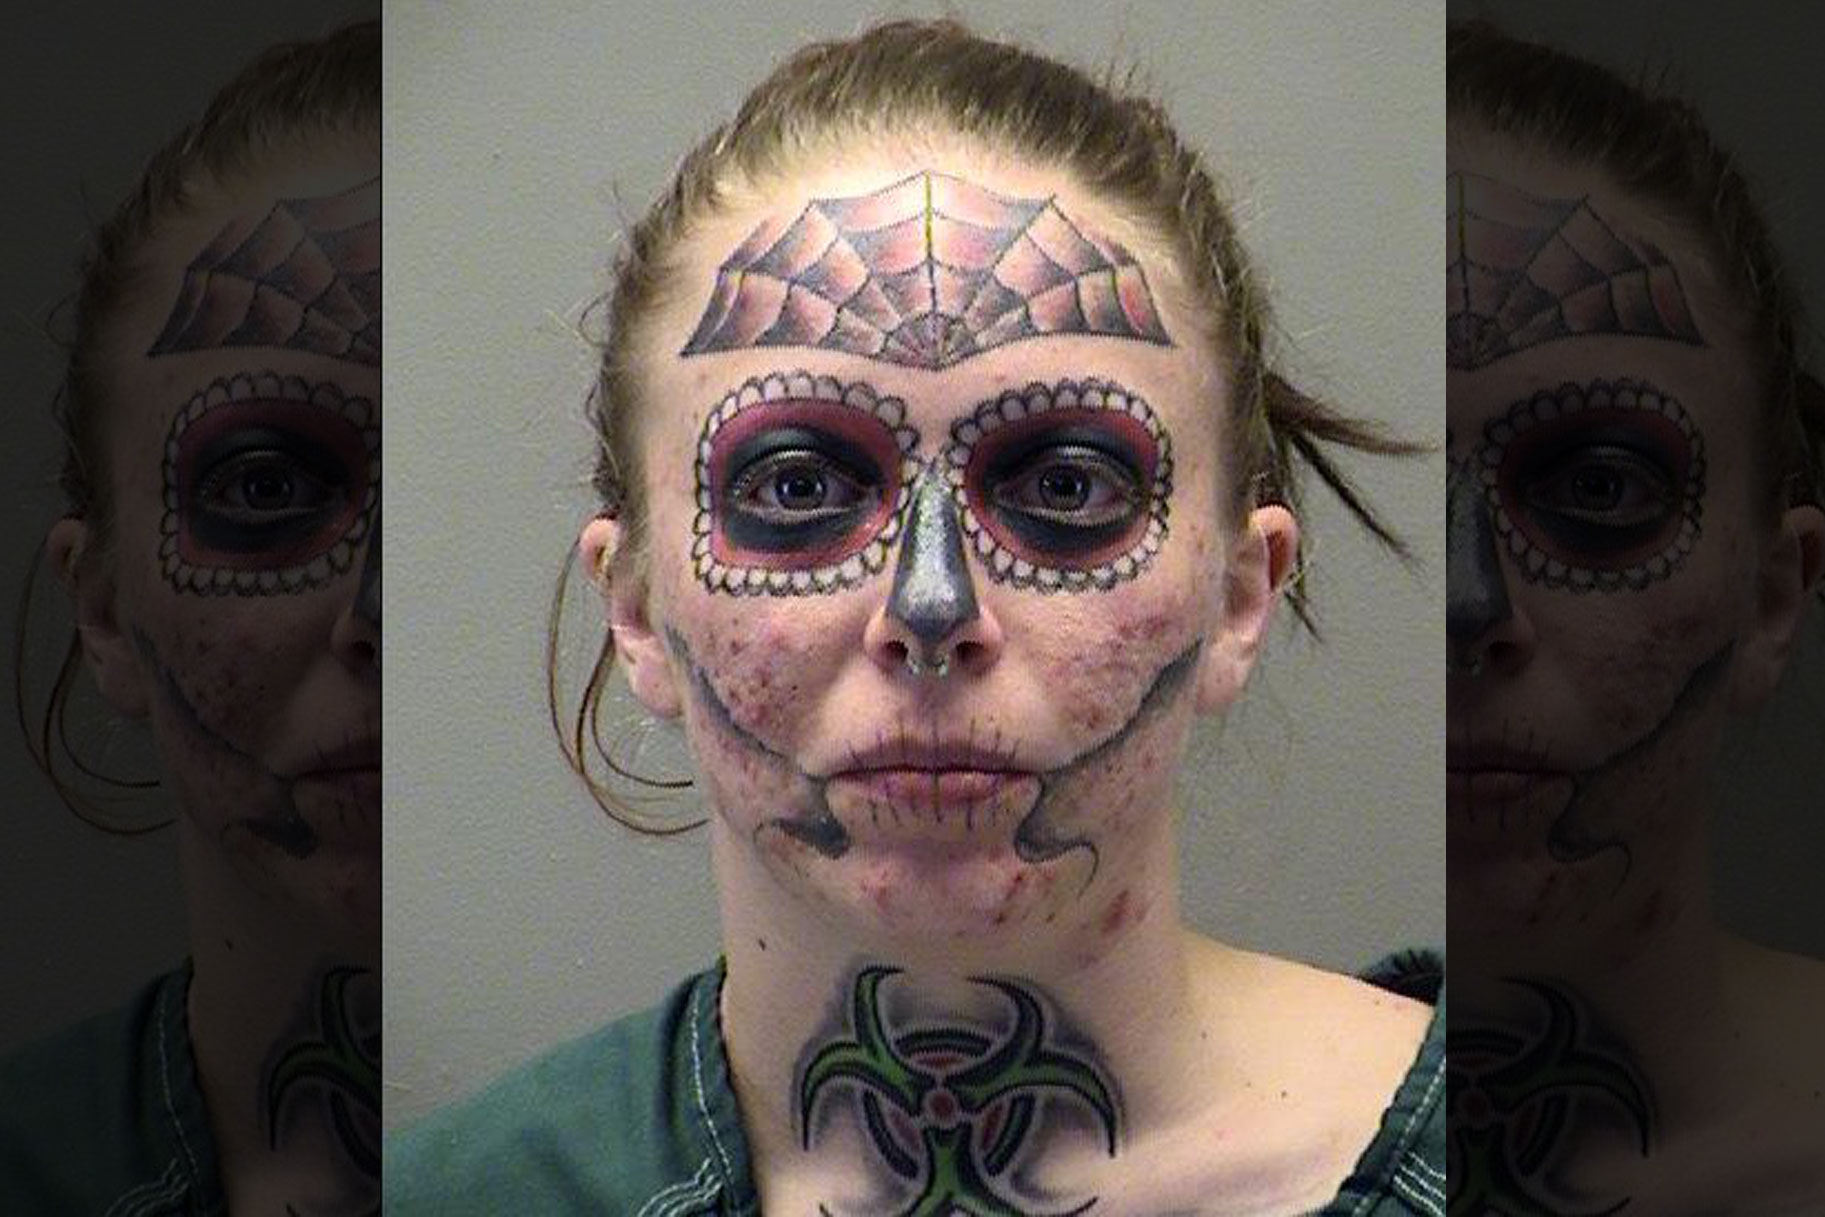 Alyssa Zebrasky Shows Off Face Tattoo In Yet Another Mugshot